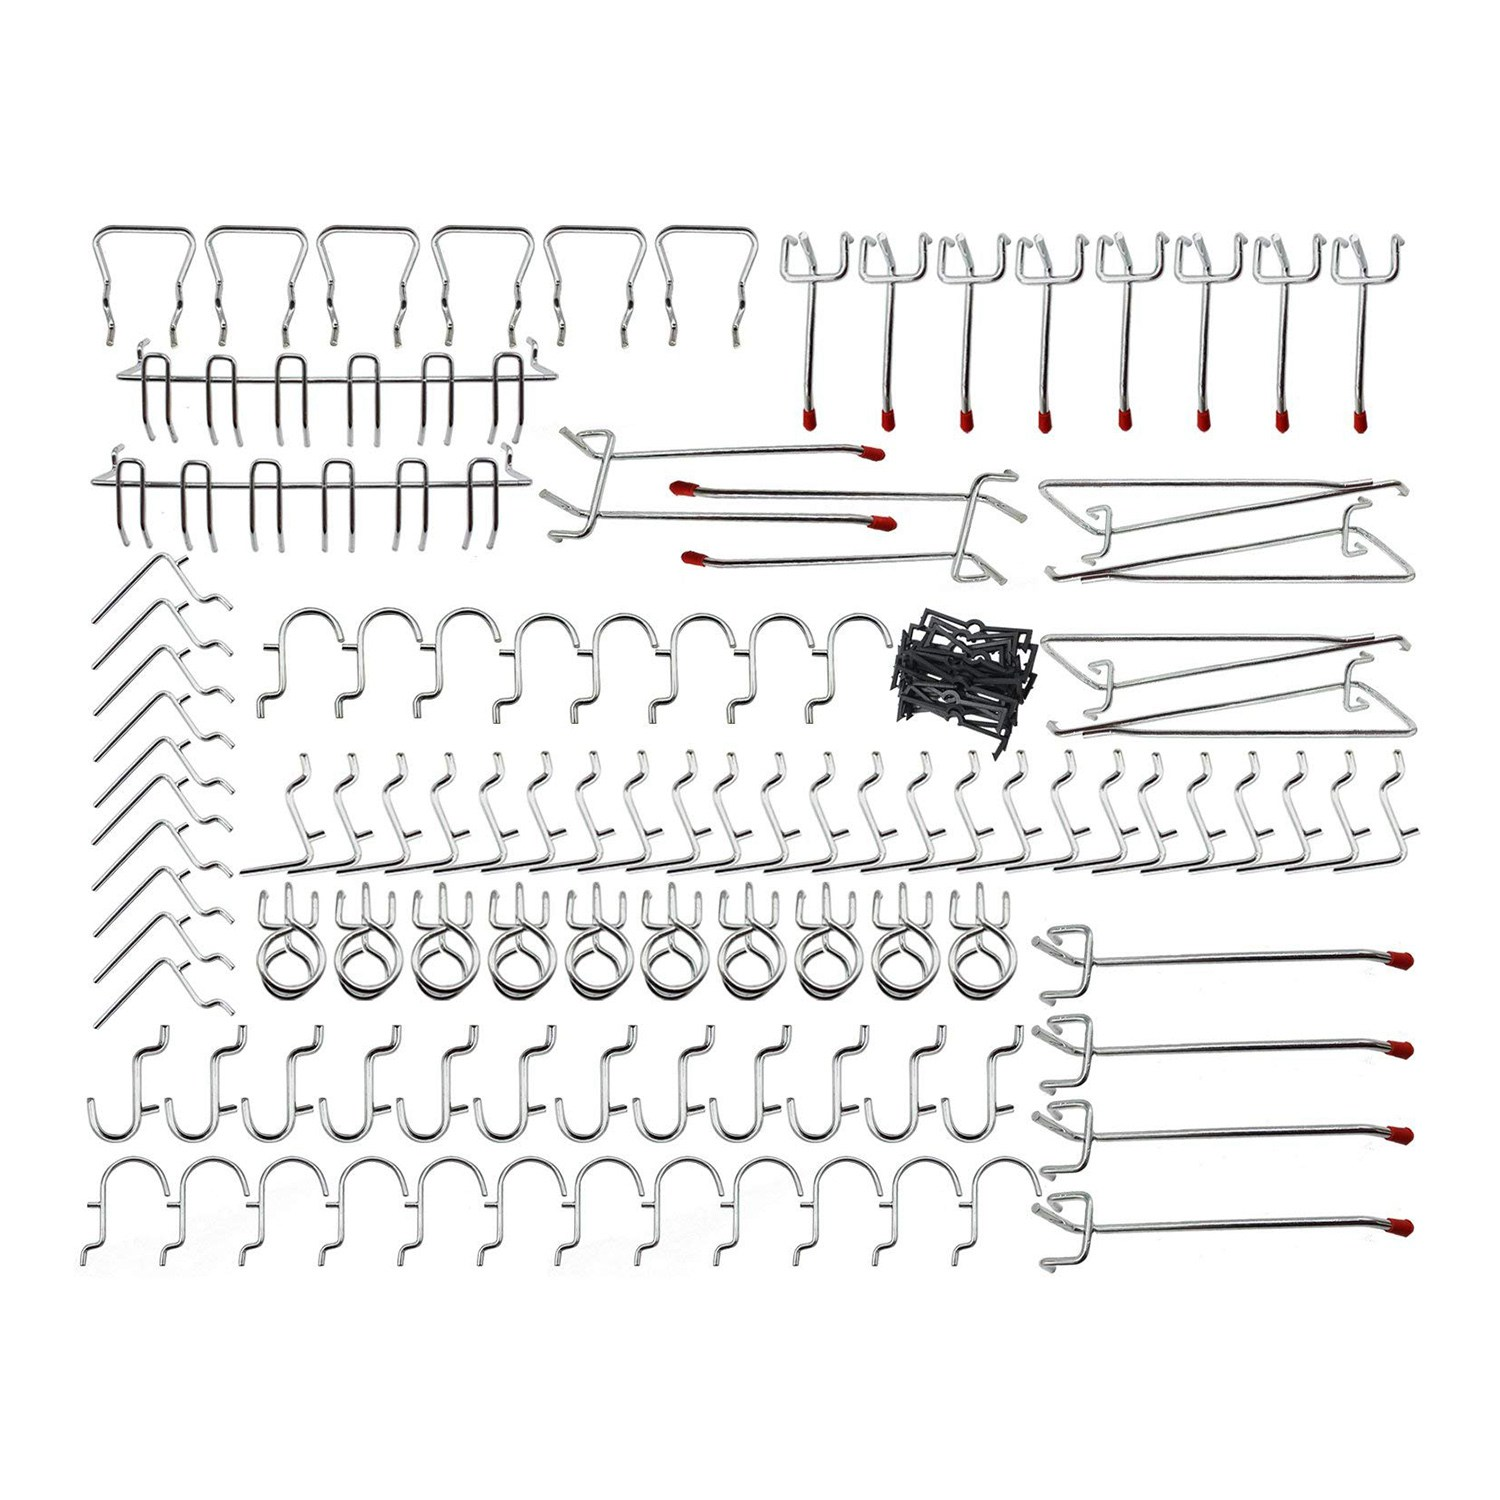 Promotion! Pegboard Hooks Assortment - 102Pcs Peg Hook Organization